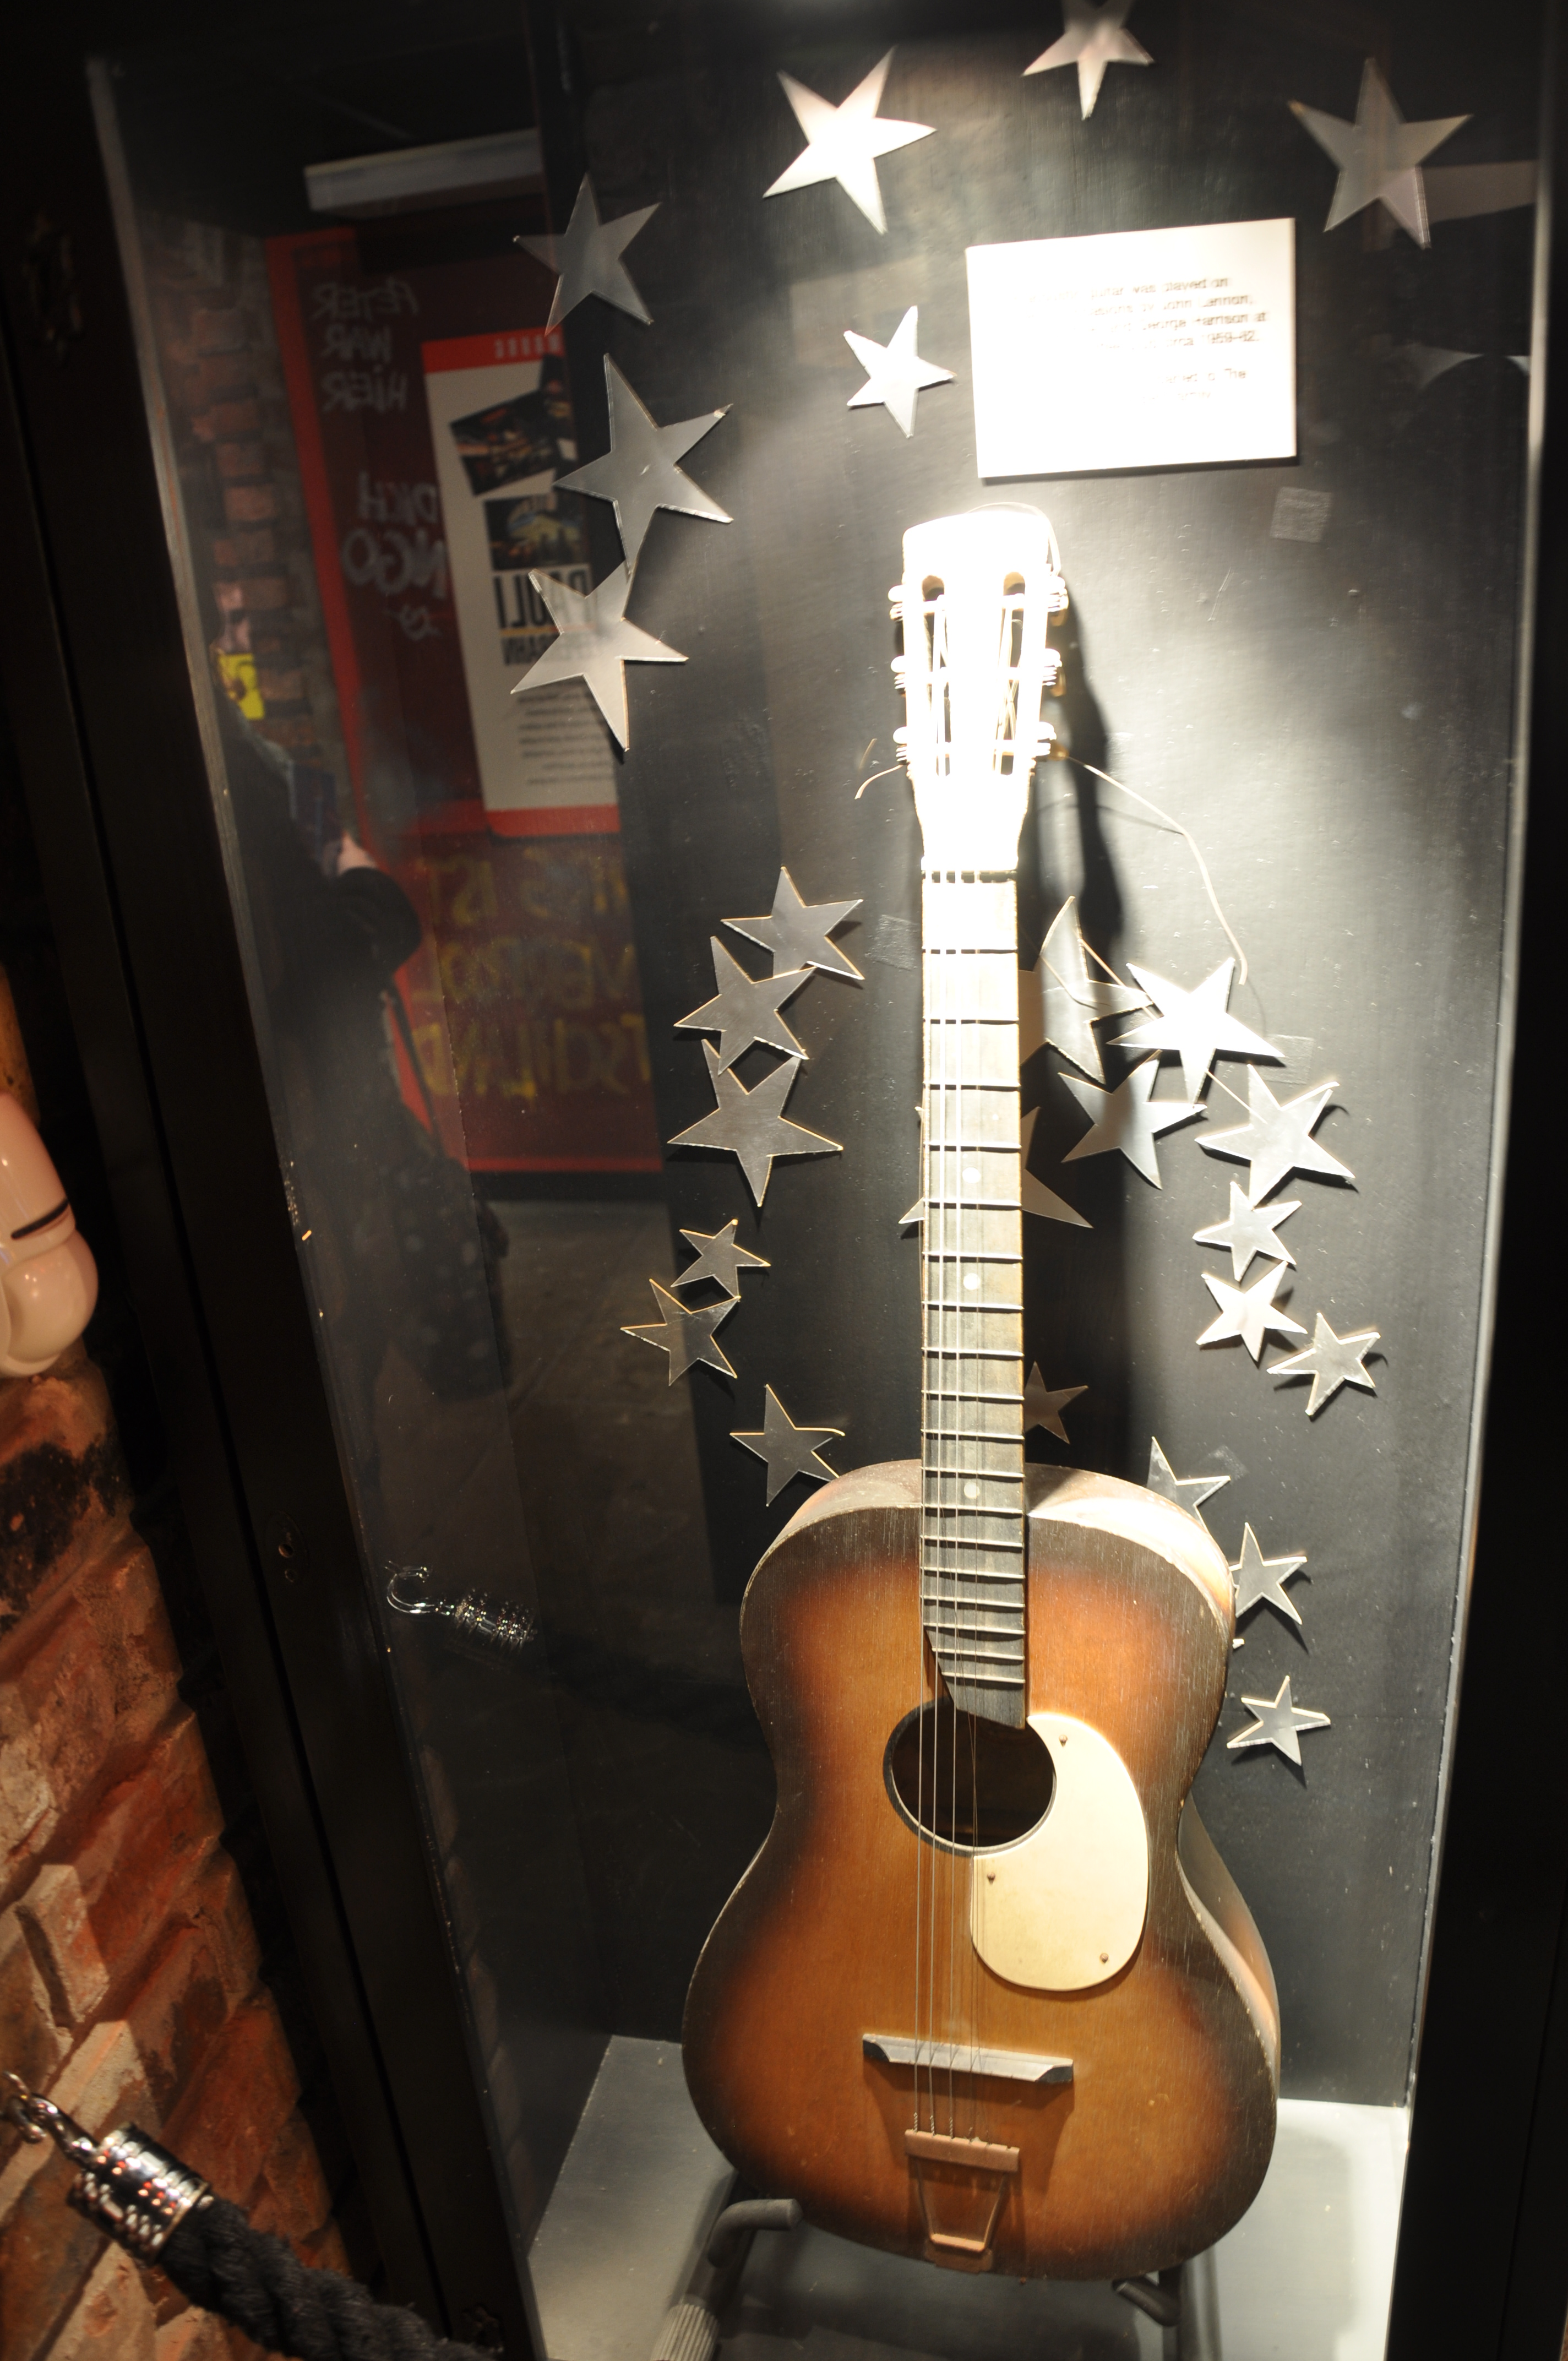 Beatles Guitars: File:Casbah Coffee Club's Guitar, Often Played By Lennon